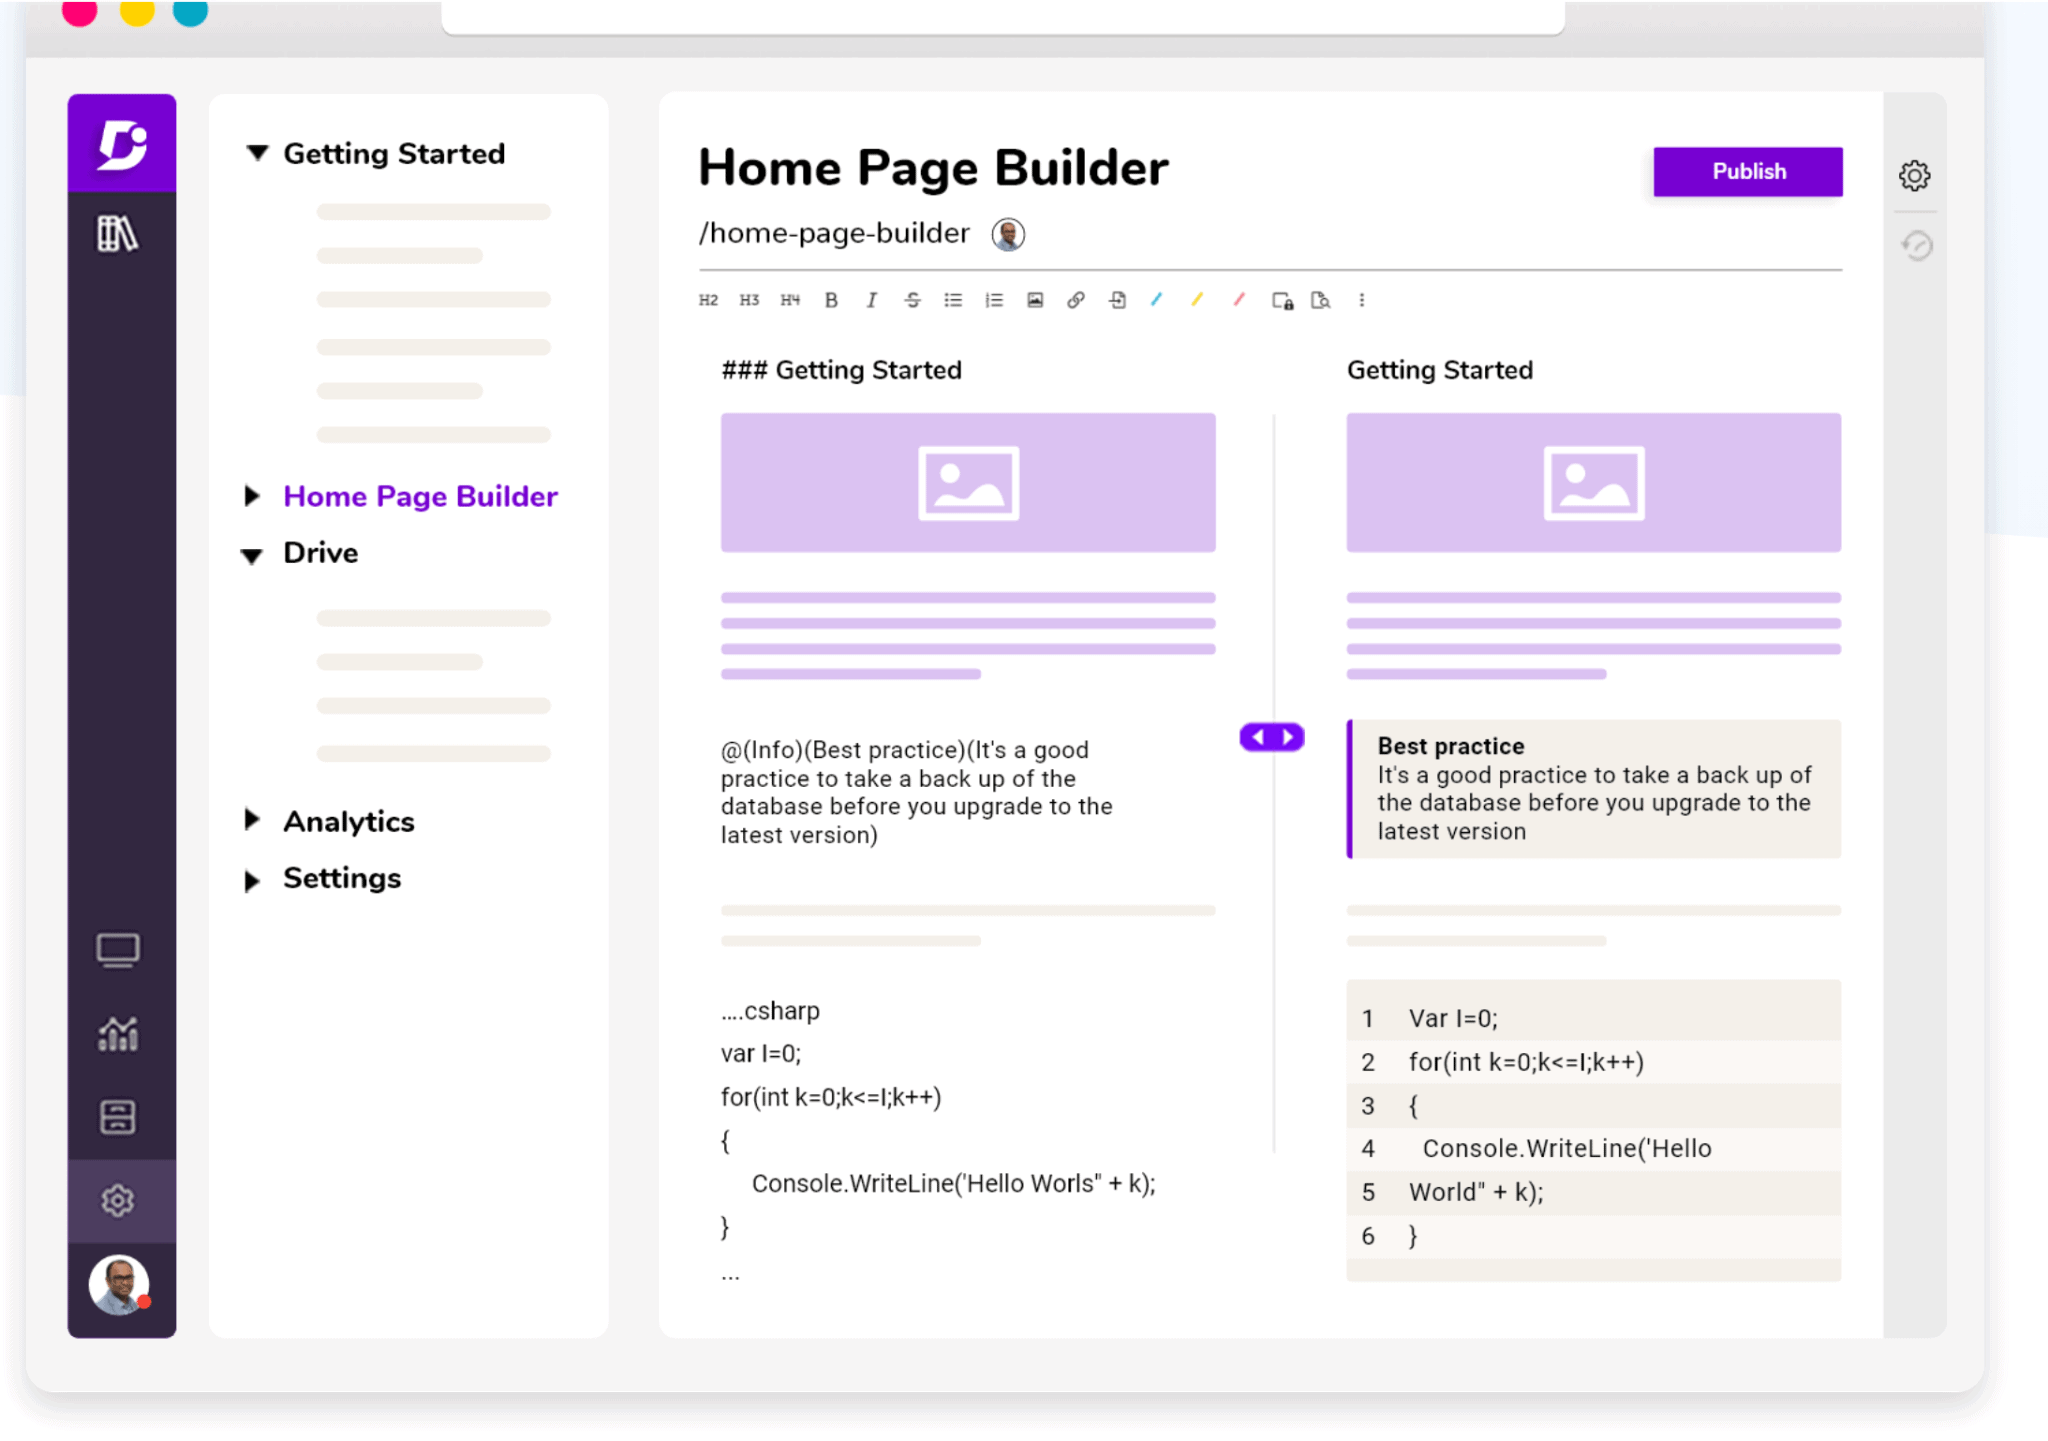 Knowledge Base Home Page Builder